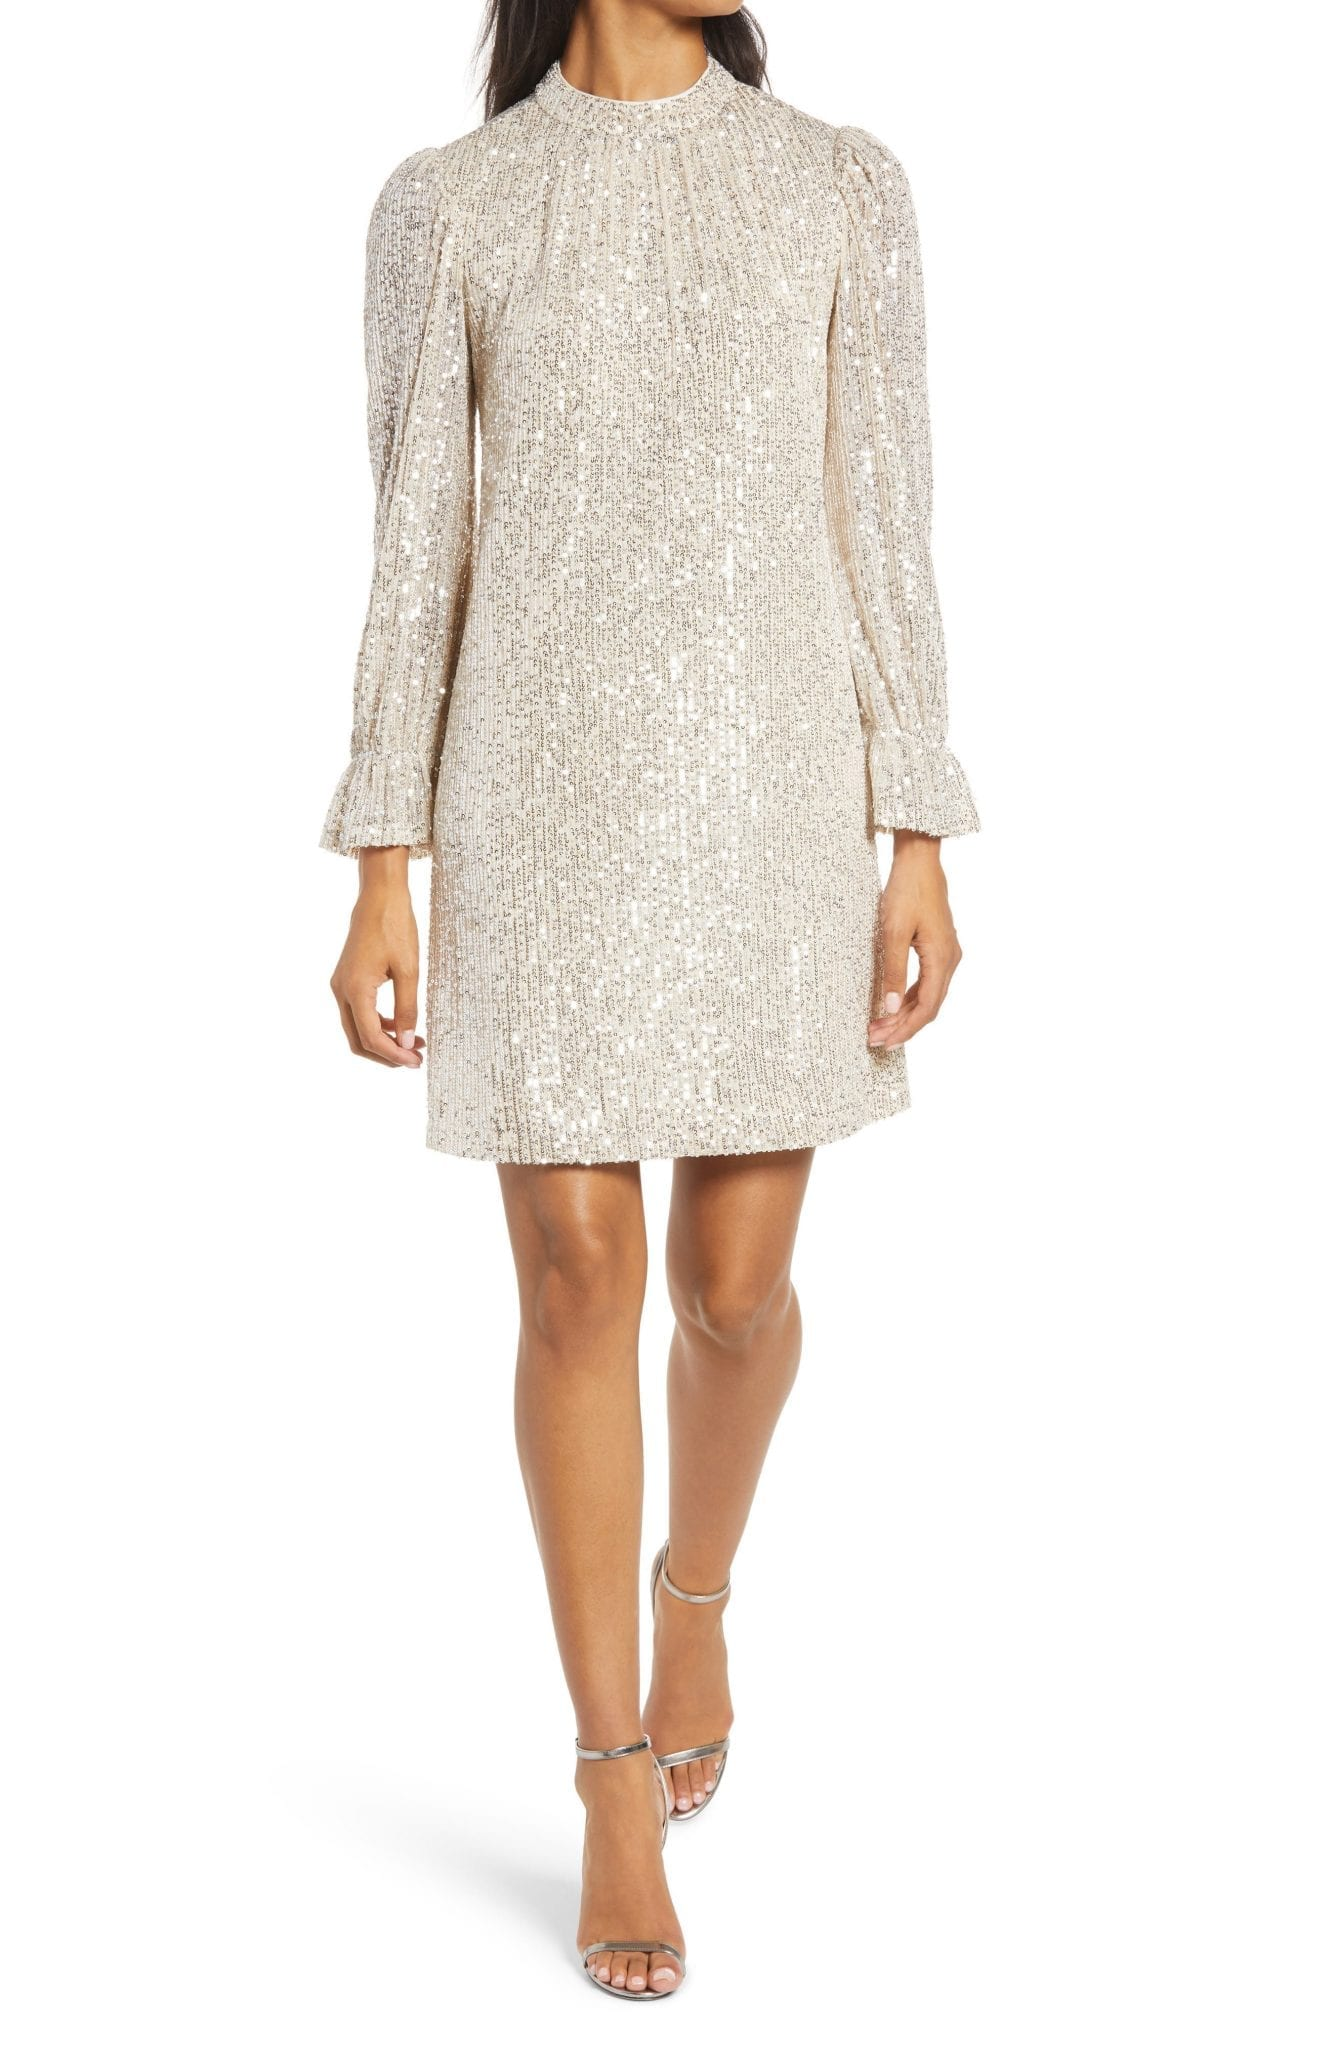 JULIA JORDAN Sequin Long Sleeve Shift Dress